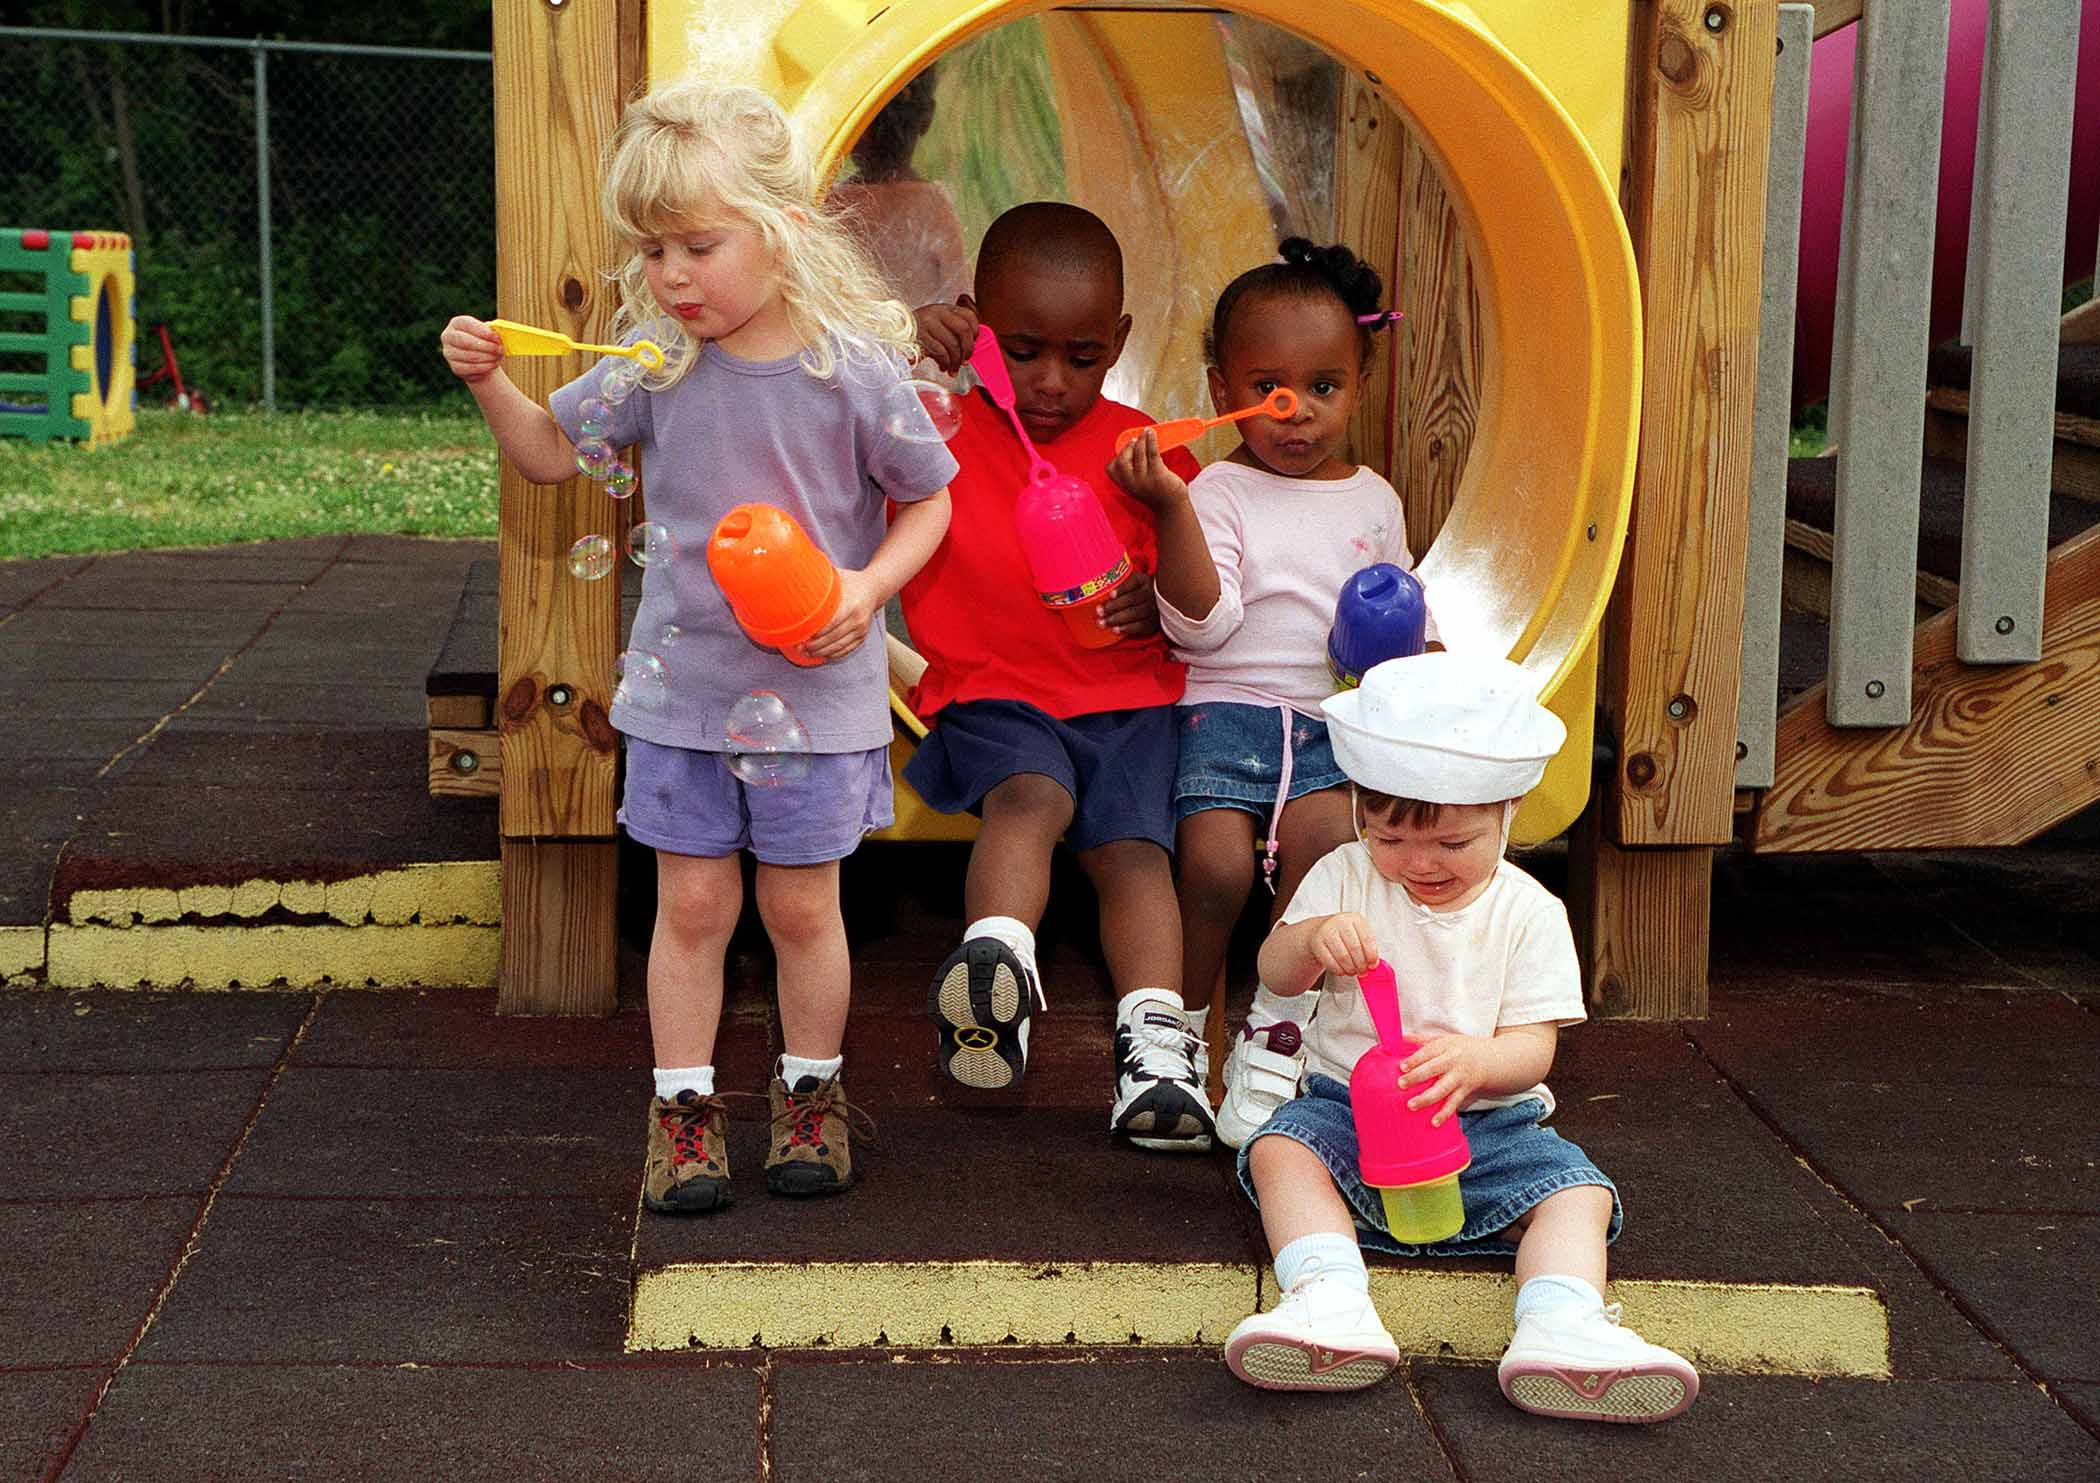 Childcare and Social Media Friends or Foes? - Children playing in the park